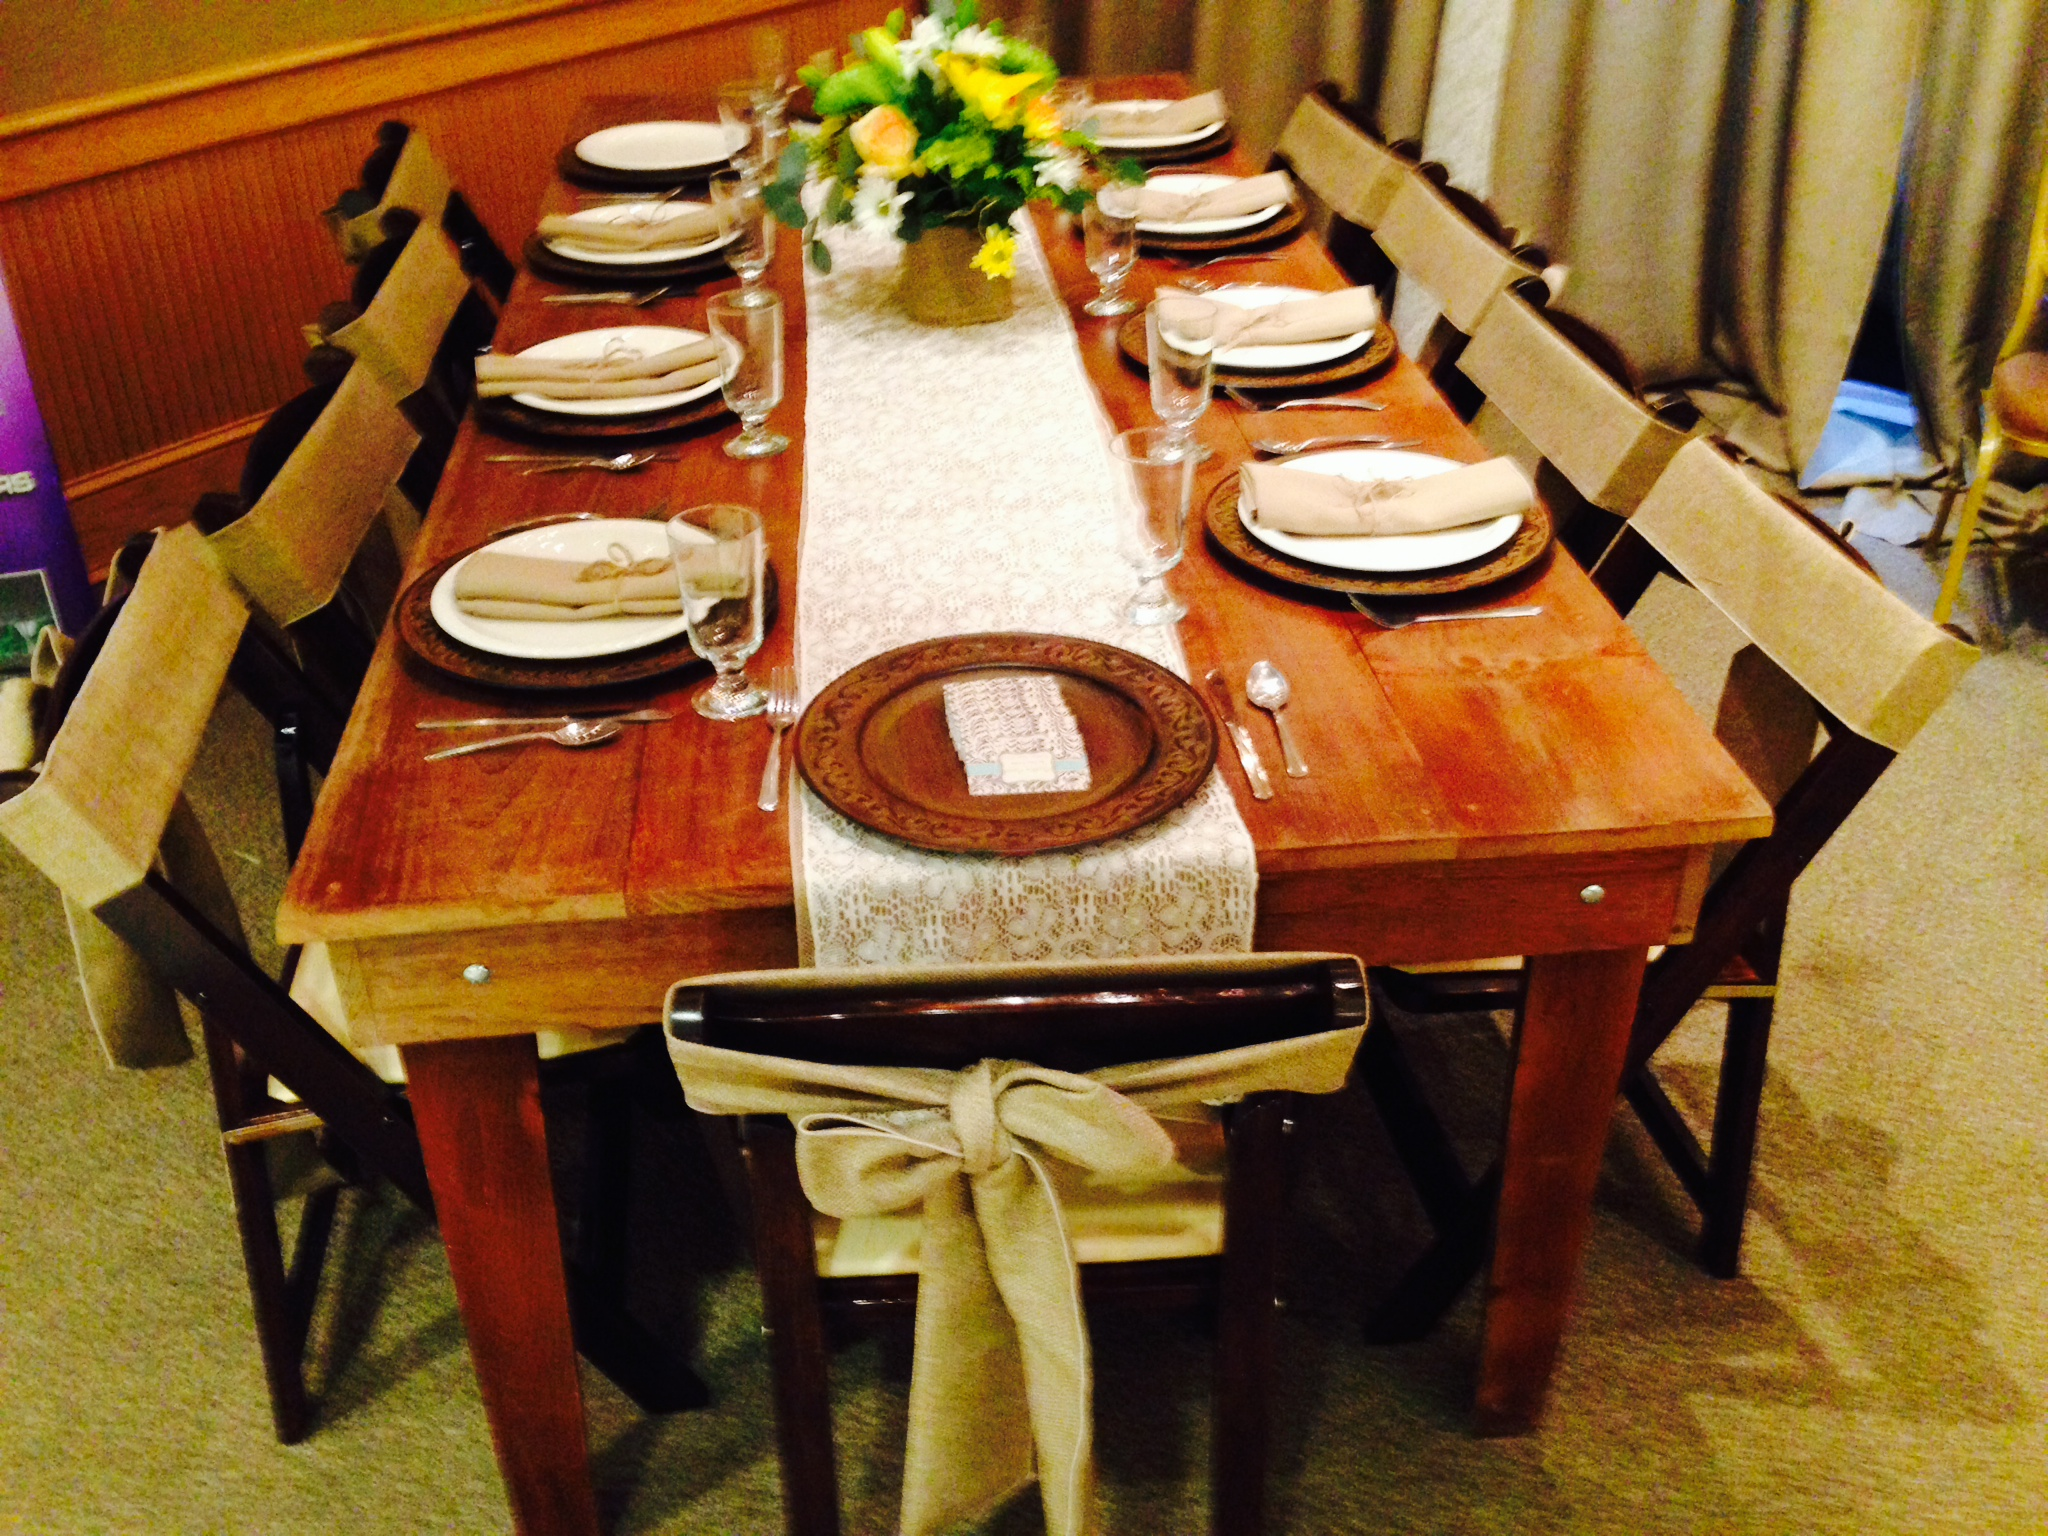 8' farm table, fruitwood chairs